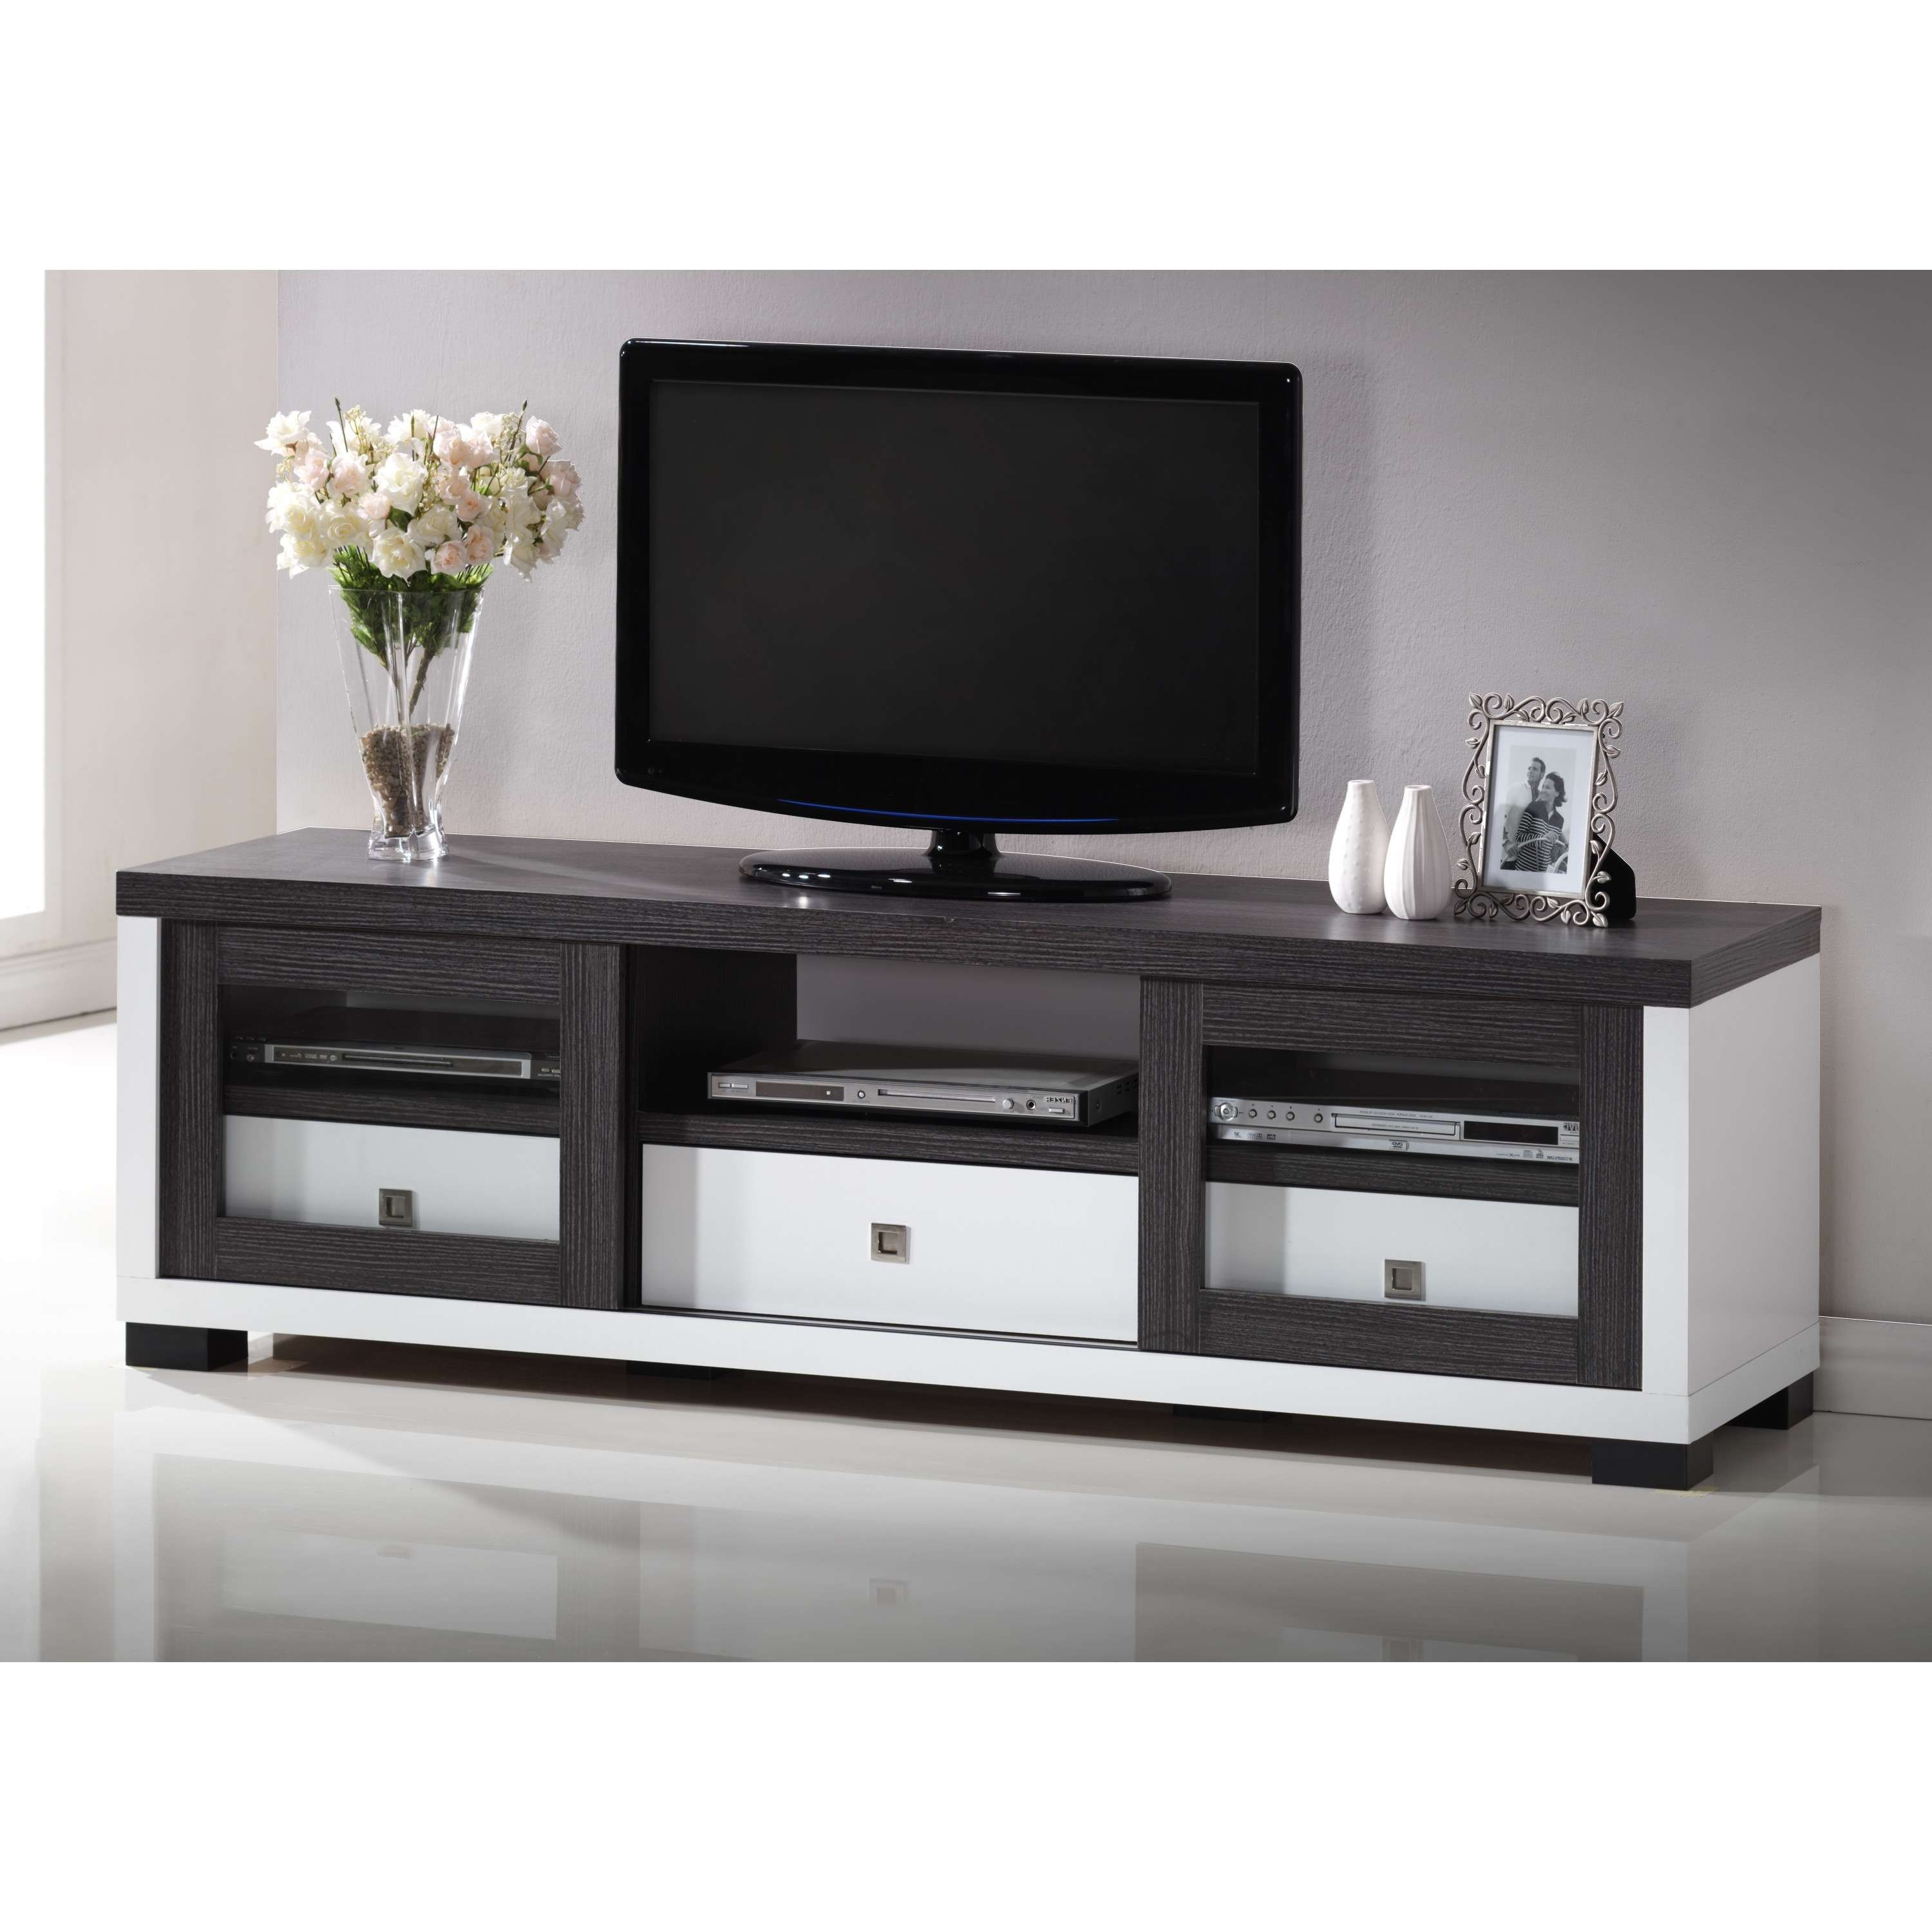 Black Cabinet With Glass Doors – [Peenmedia] Throughout Tv Cabinets With Glass Doors (View 2 of 20)